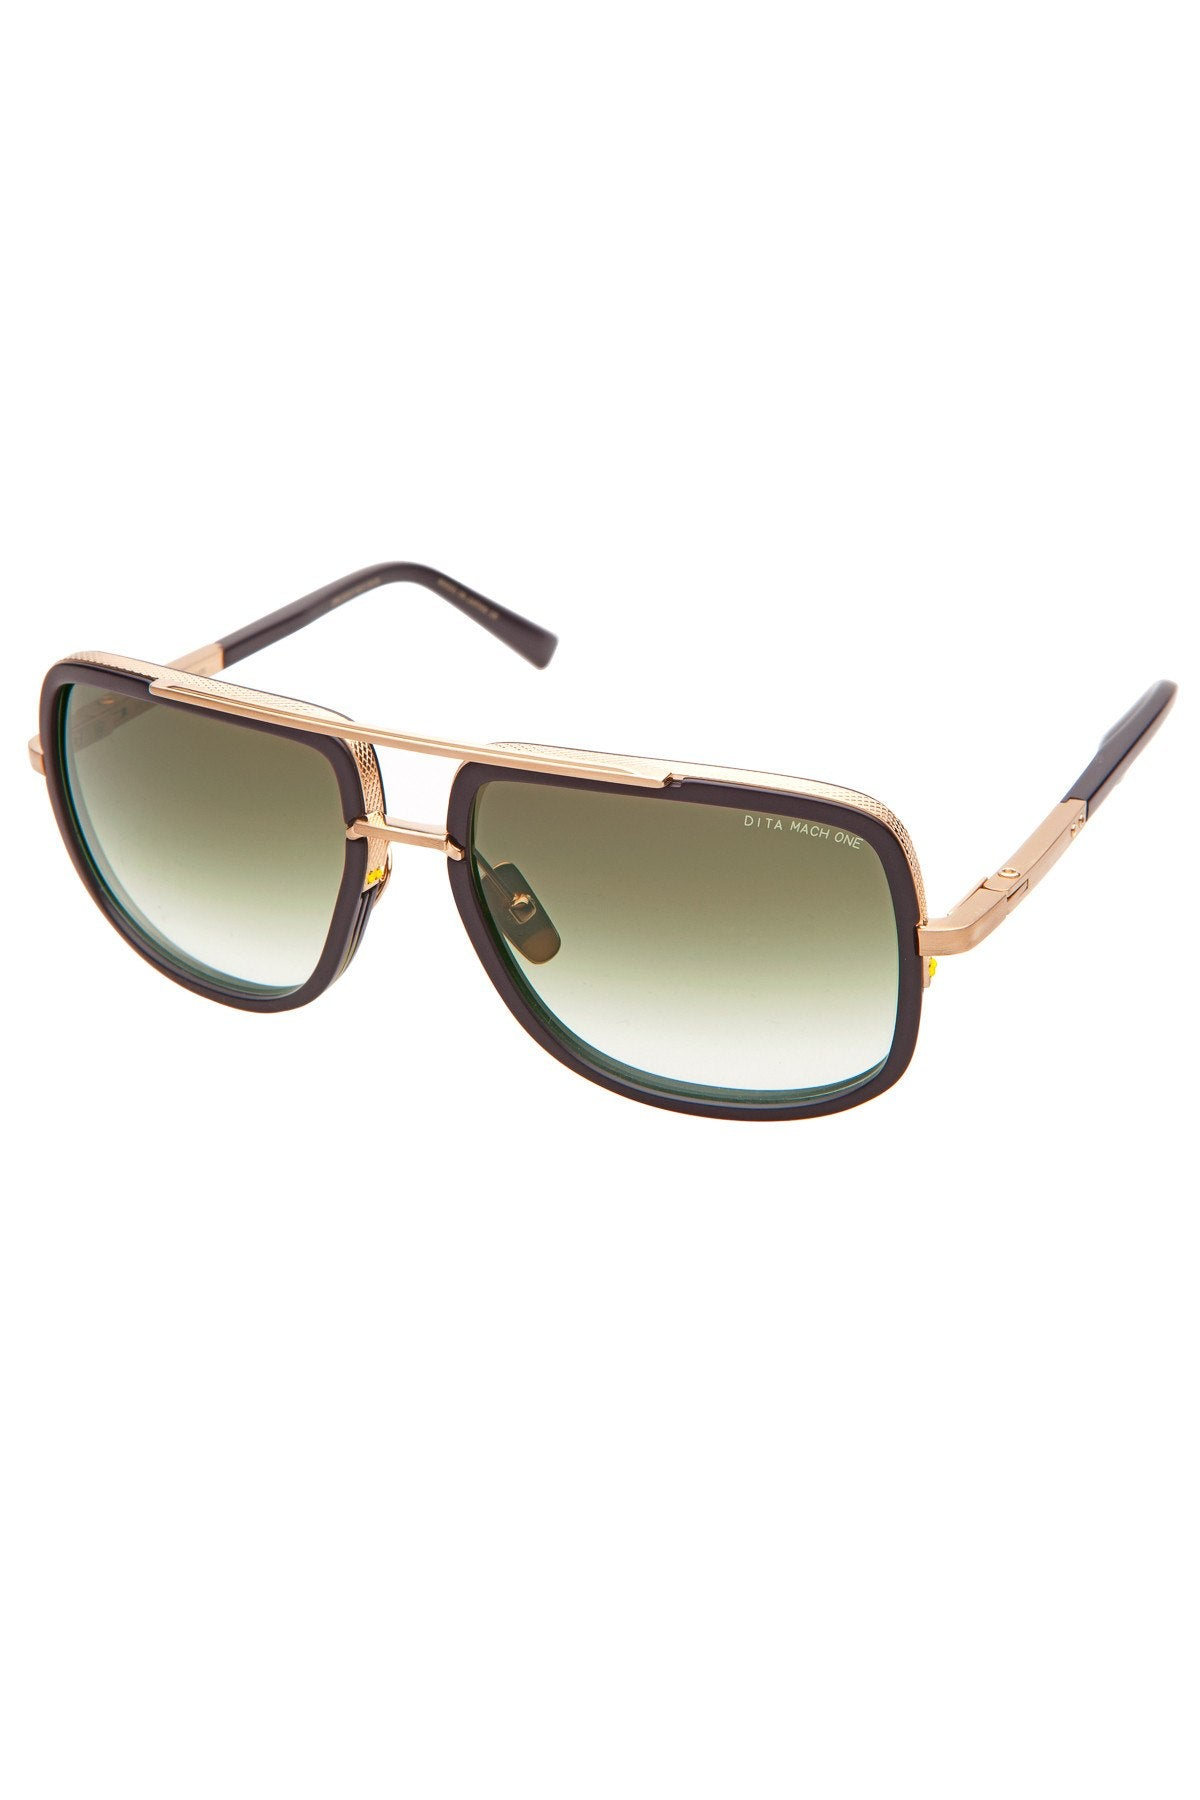 adc44d2dca Sunglasses - Dita Mach-One DRX-2030F Sunglasses